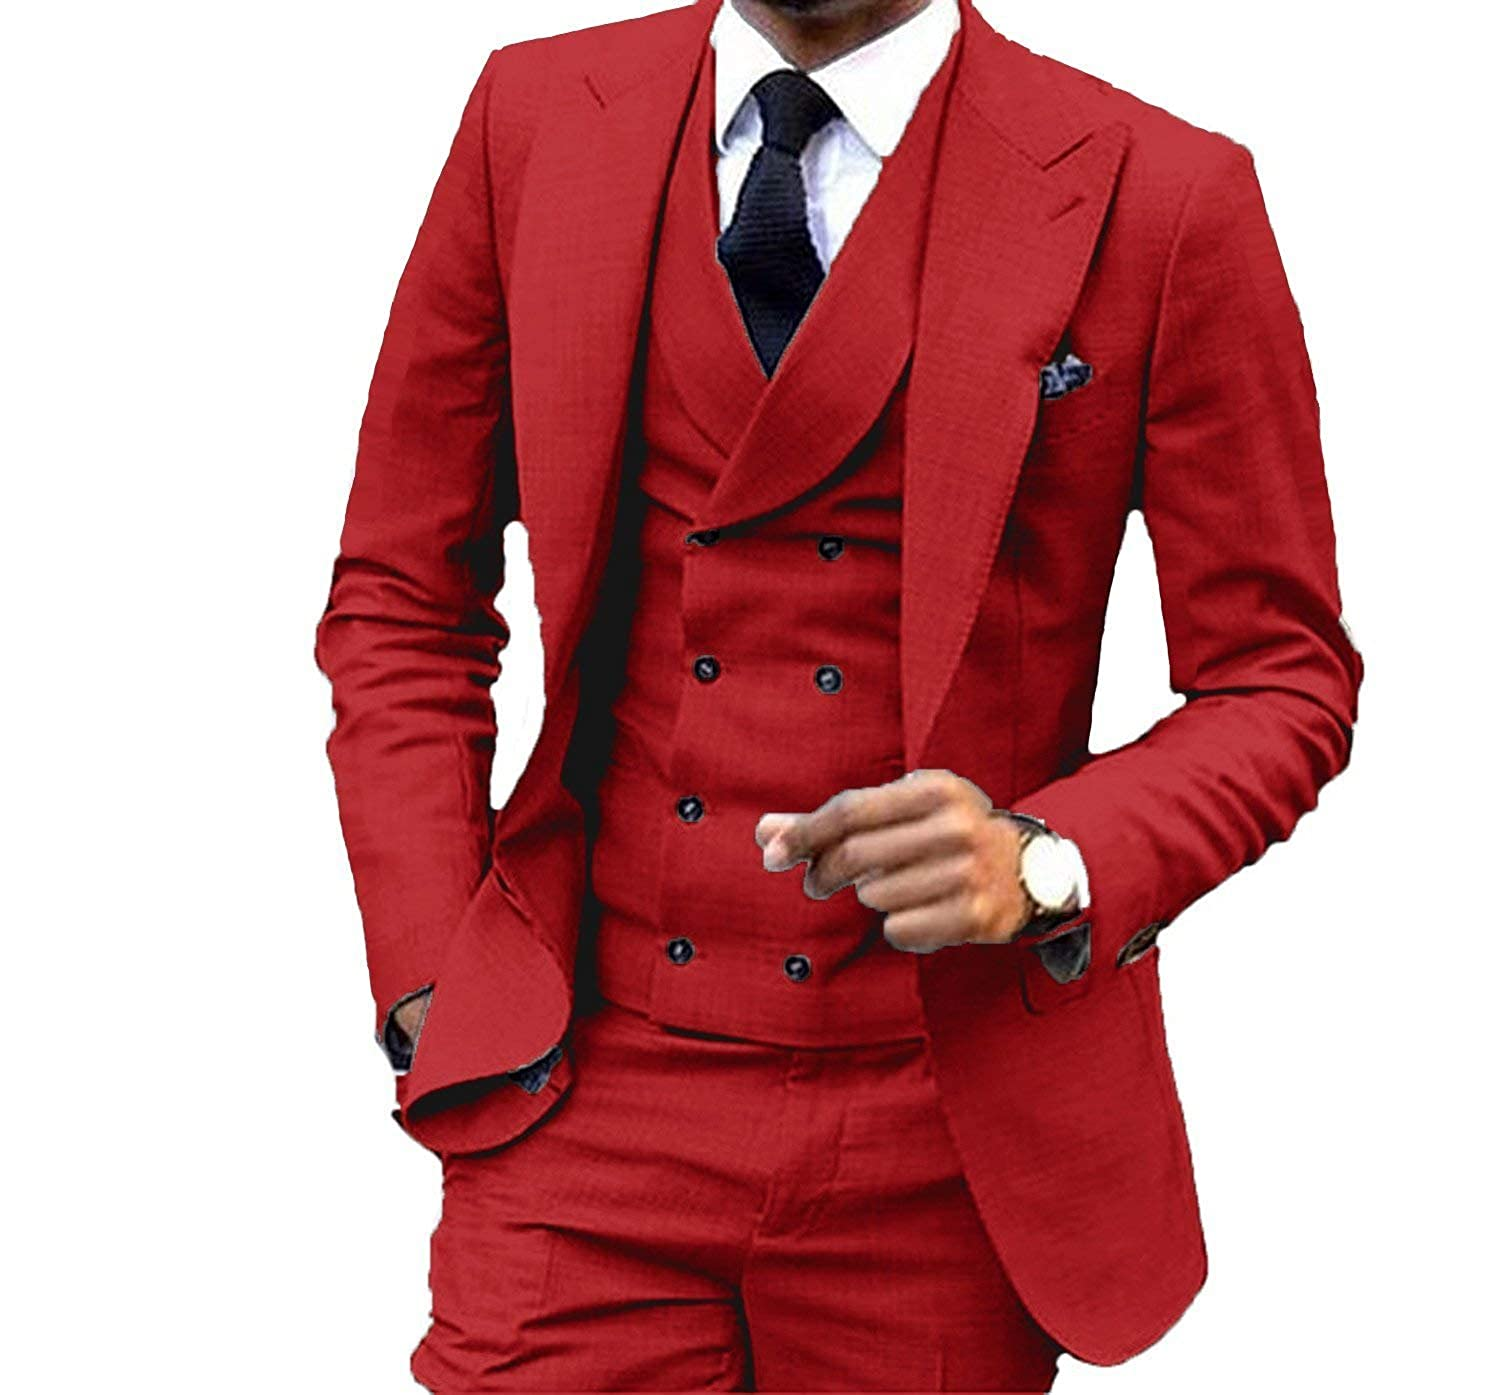 Fitty Lell Men's Suit 3 Piece Fashion Double-Breasted Blazer Wedding Party Suit